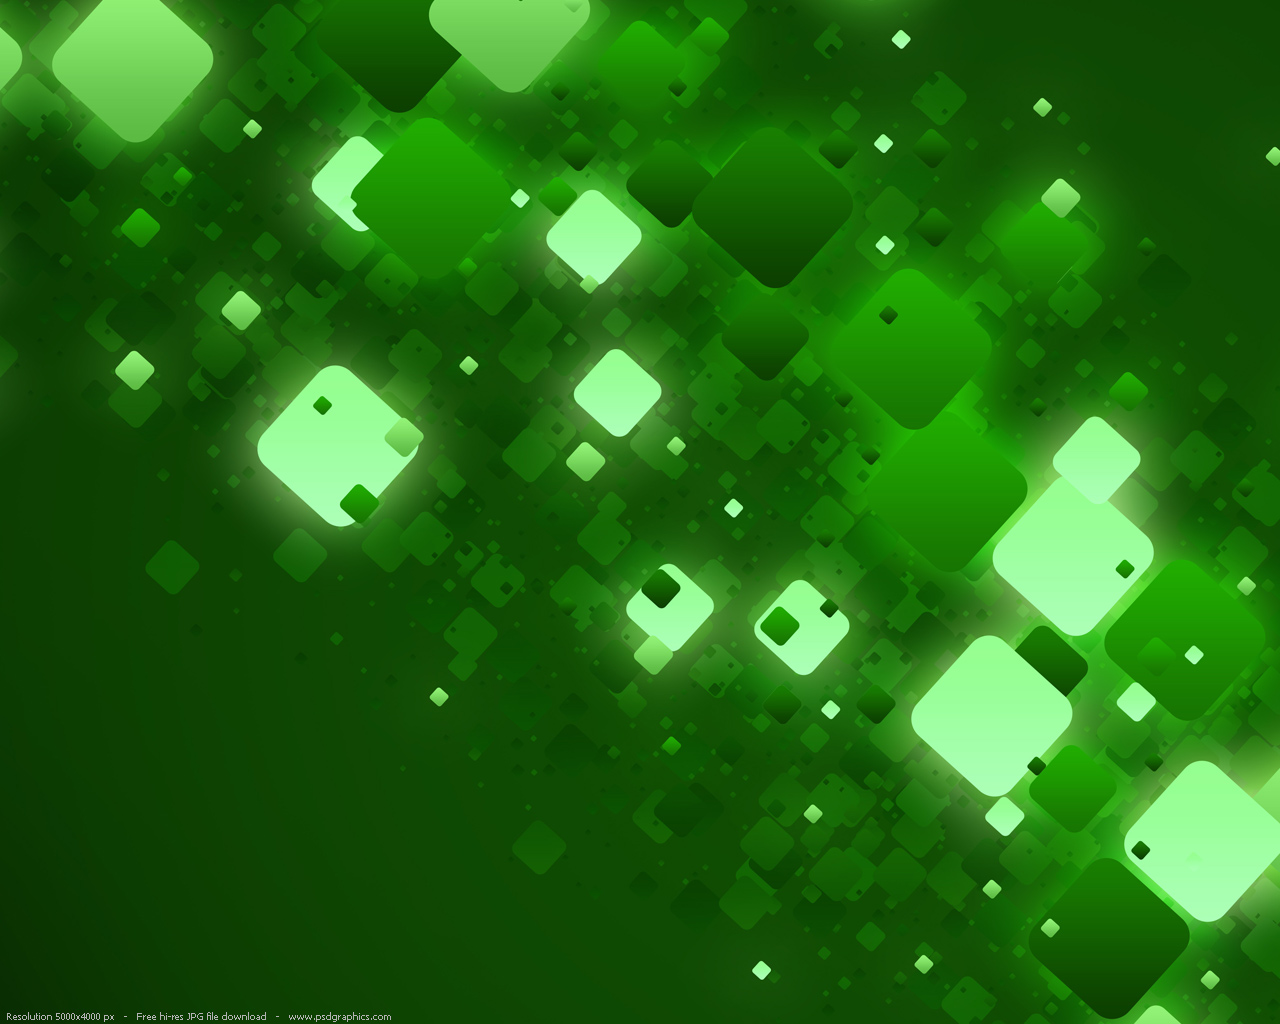 3d Illusion Wallpapers Hd Lovely Green Rose Wallpapers 11751 Hdwpro